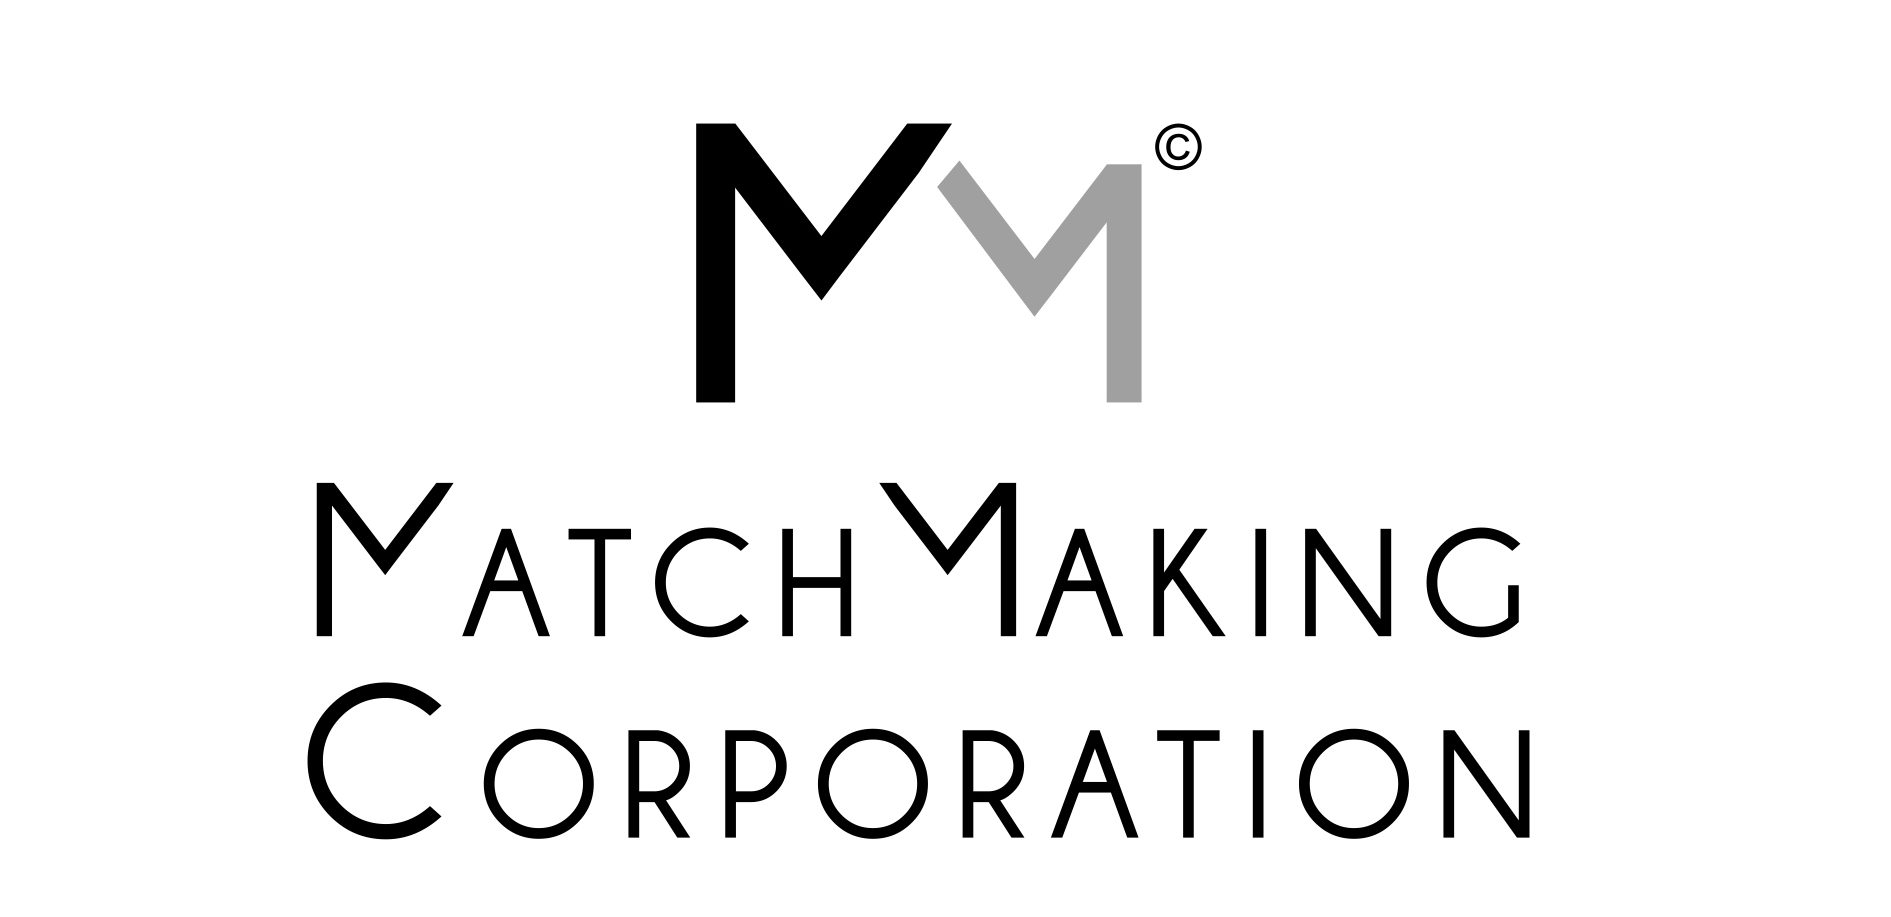 Matchmaking Corporation